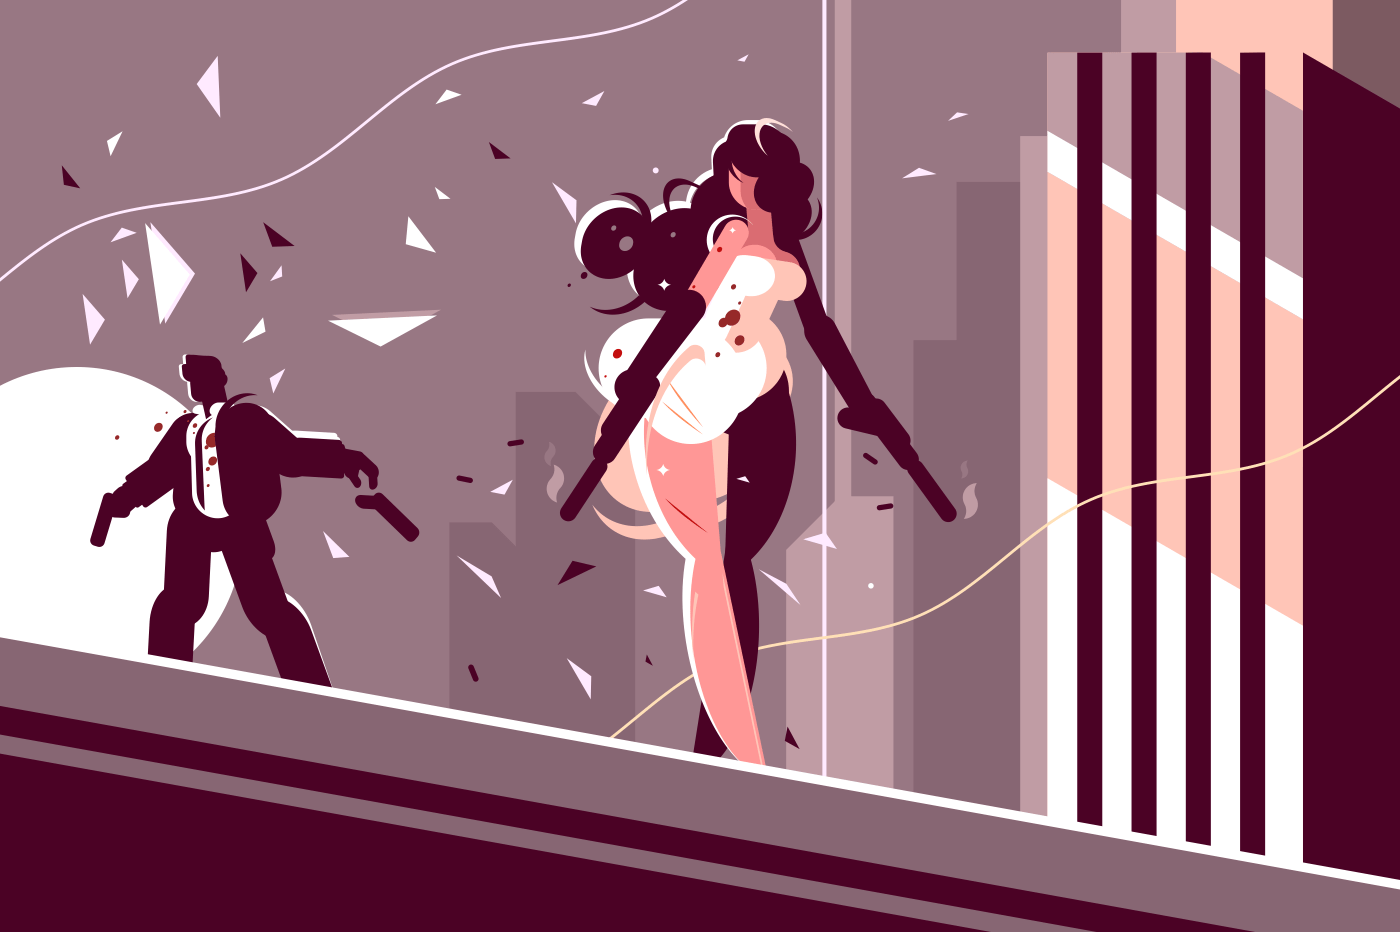 Attractive girl spy with gun shoots at enemy. Vector illustration